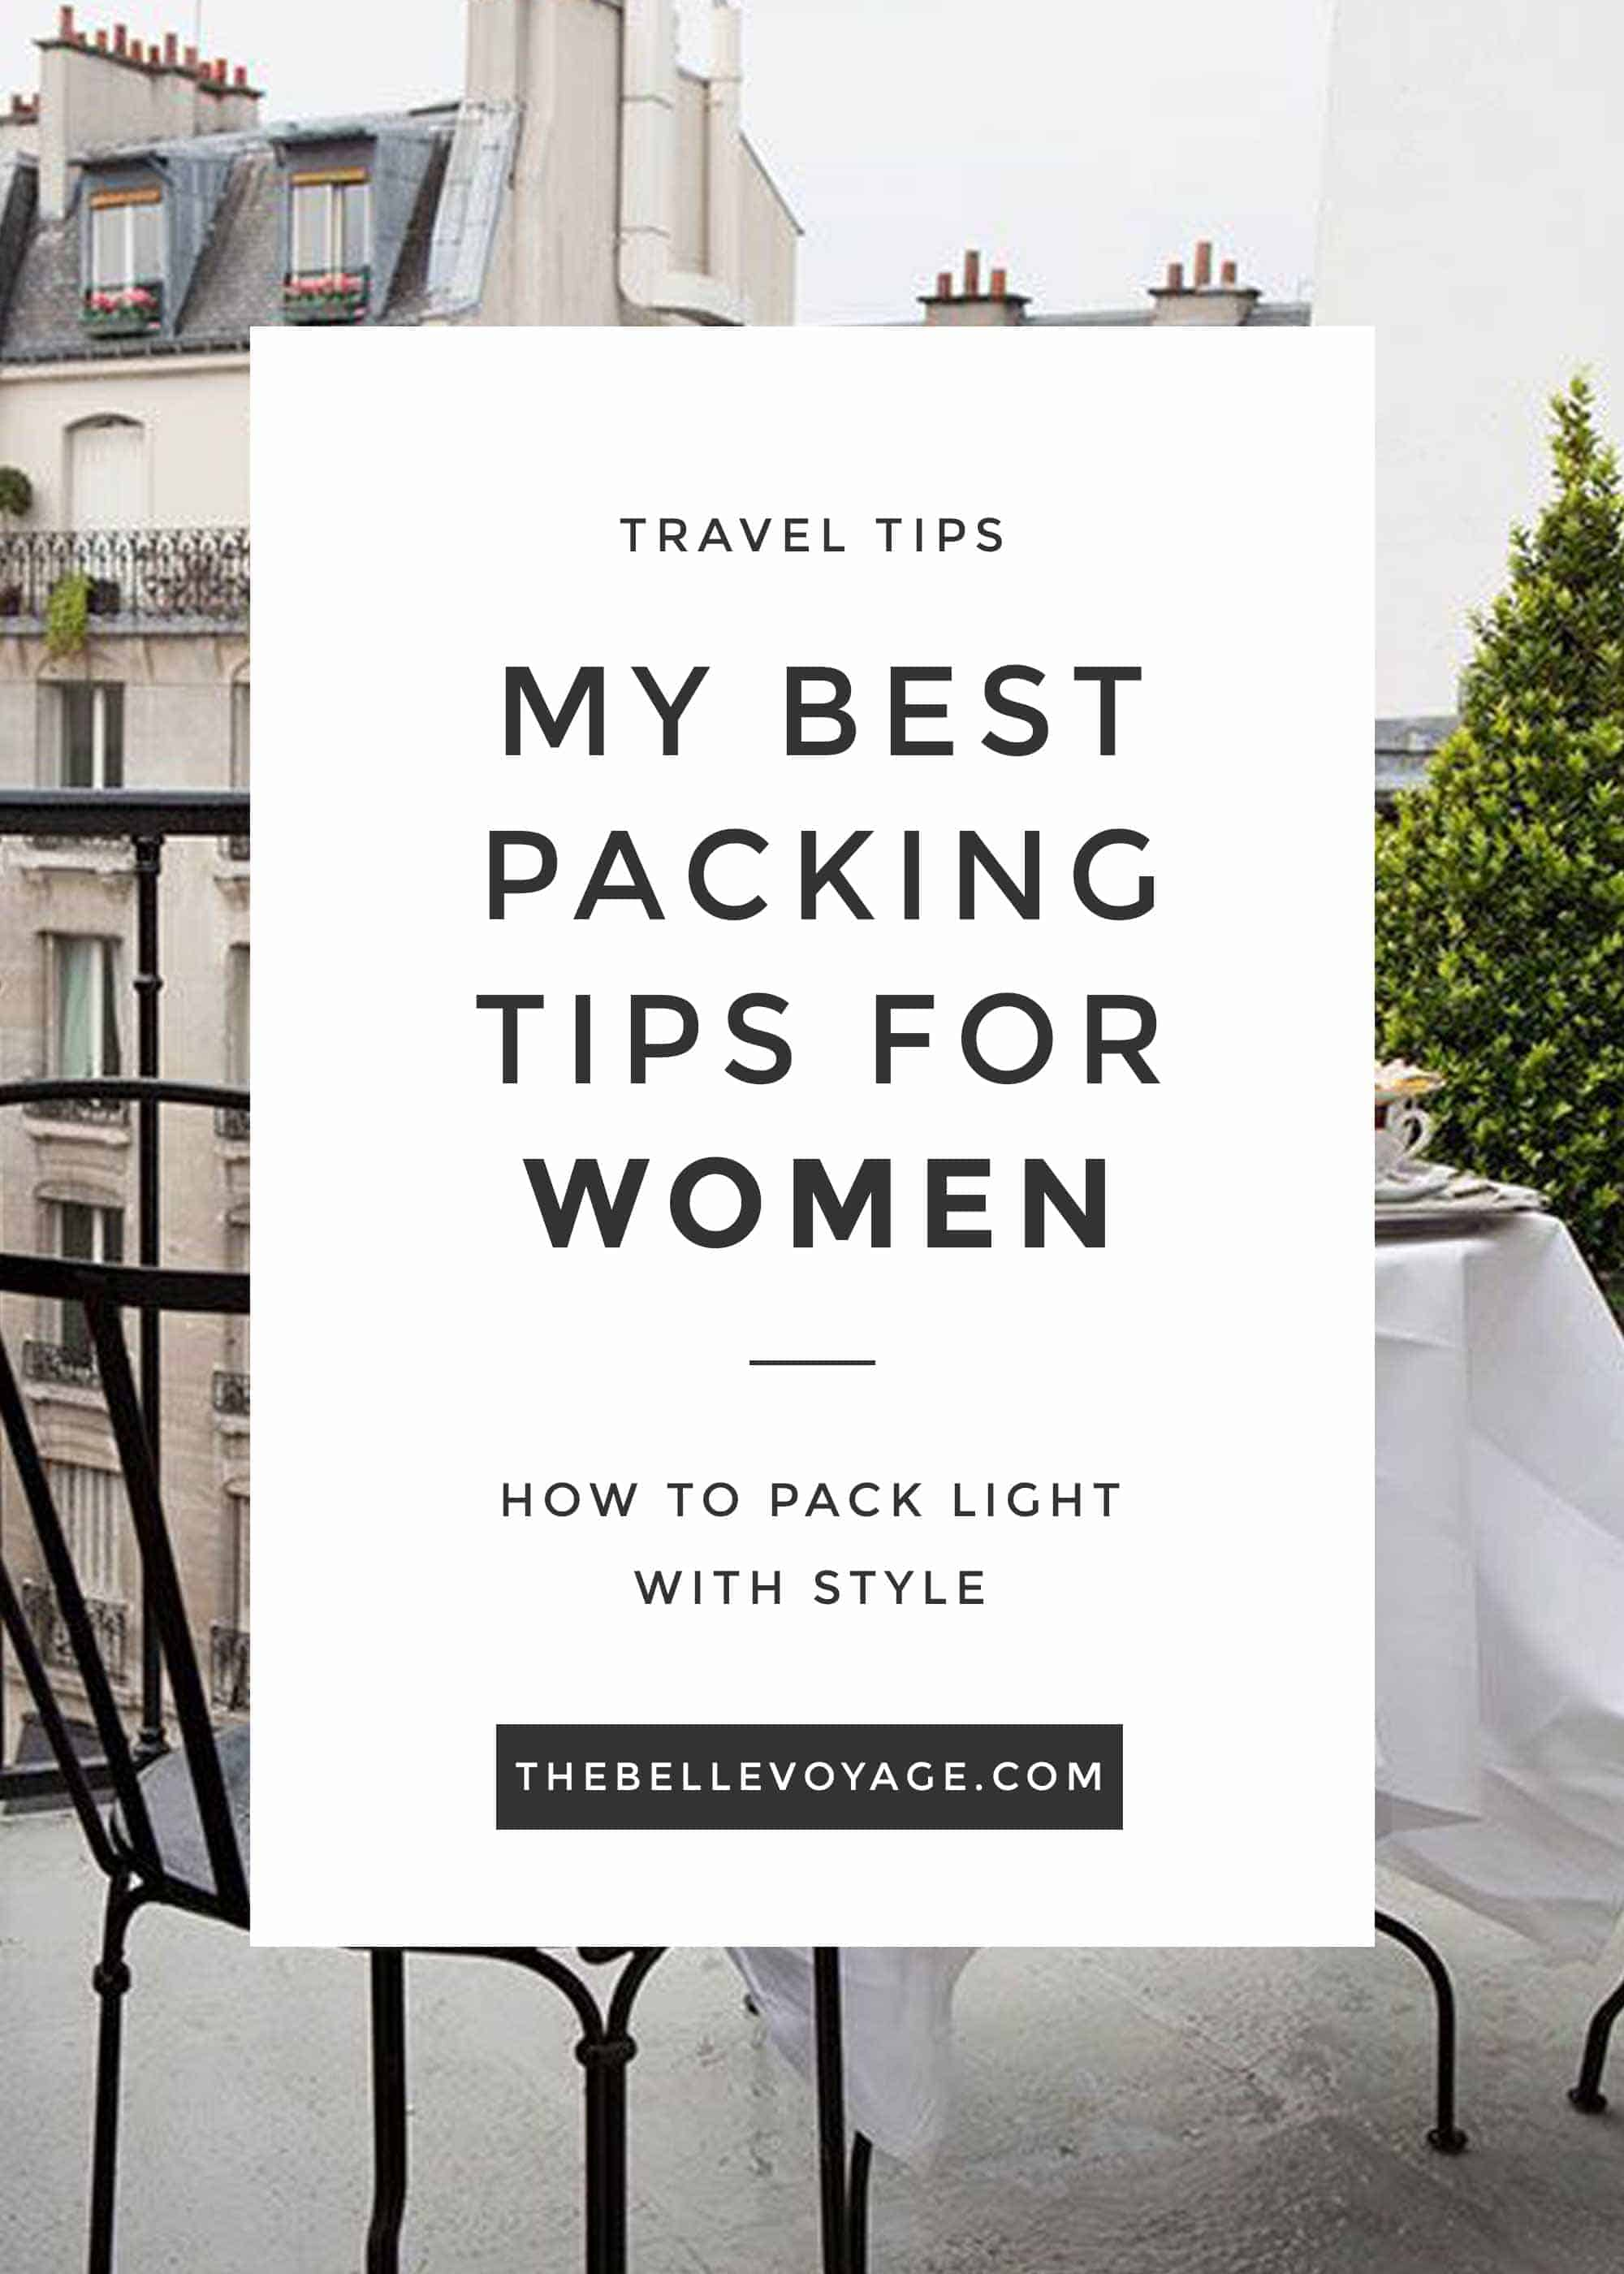 women travel outfits, women travel clothing, packing tips for travel, packing tips flying, packing tips carry on suitcase.